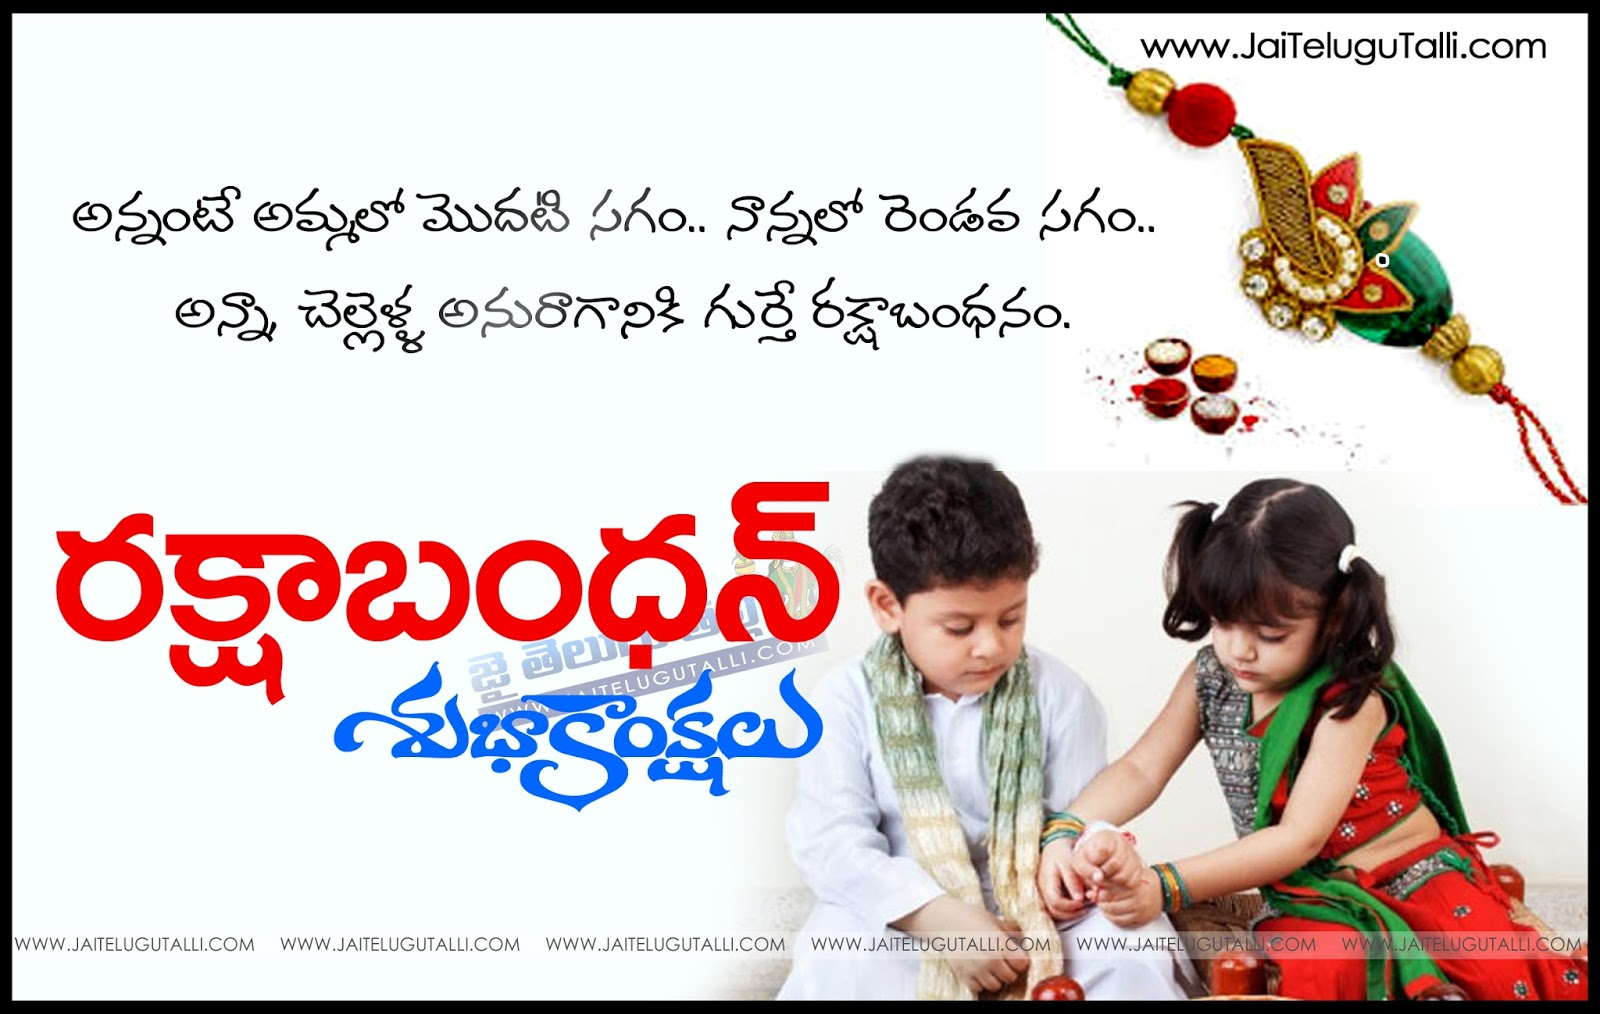 Happy raksha bandhan greetings telugu quotes hd wallpapers best happy rakshabandan greetings life inspiration telugu quotes rakhi kristyandbryce Image collections